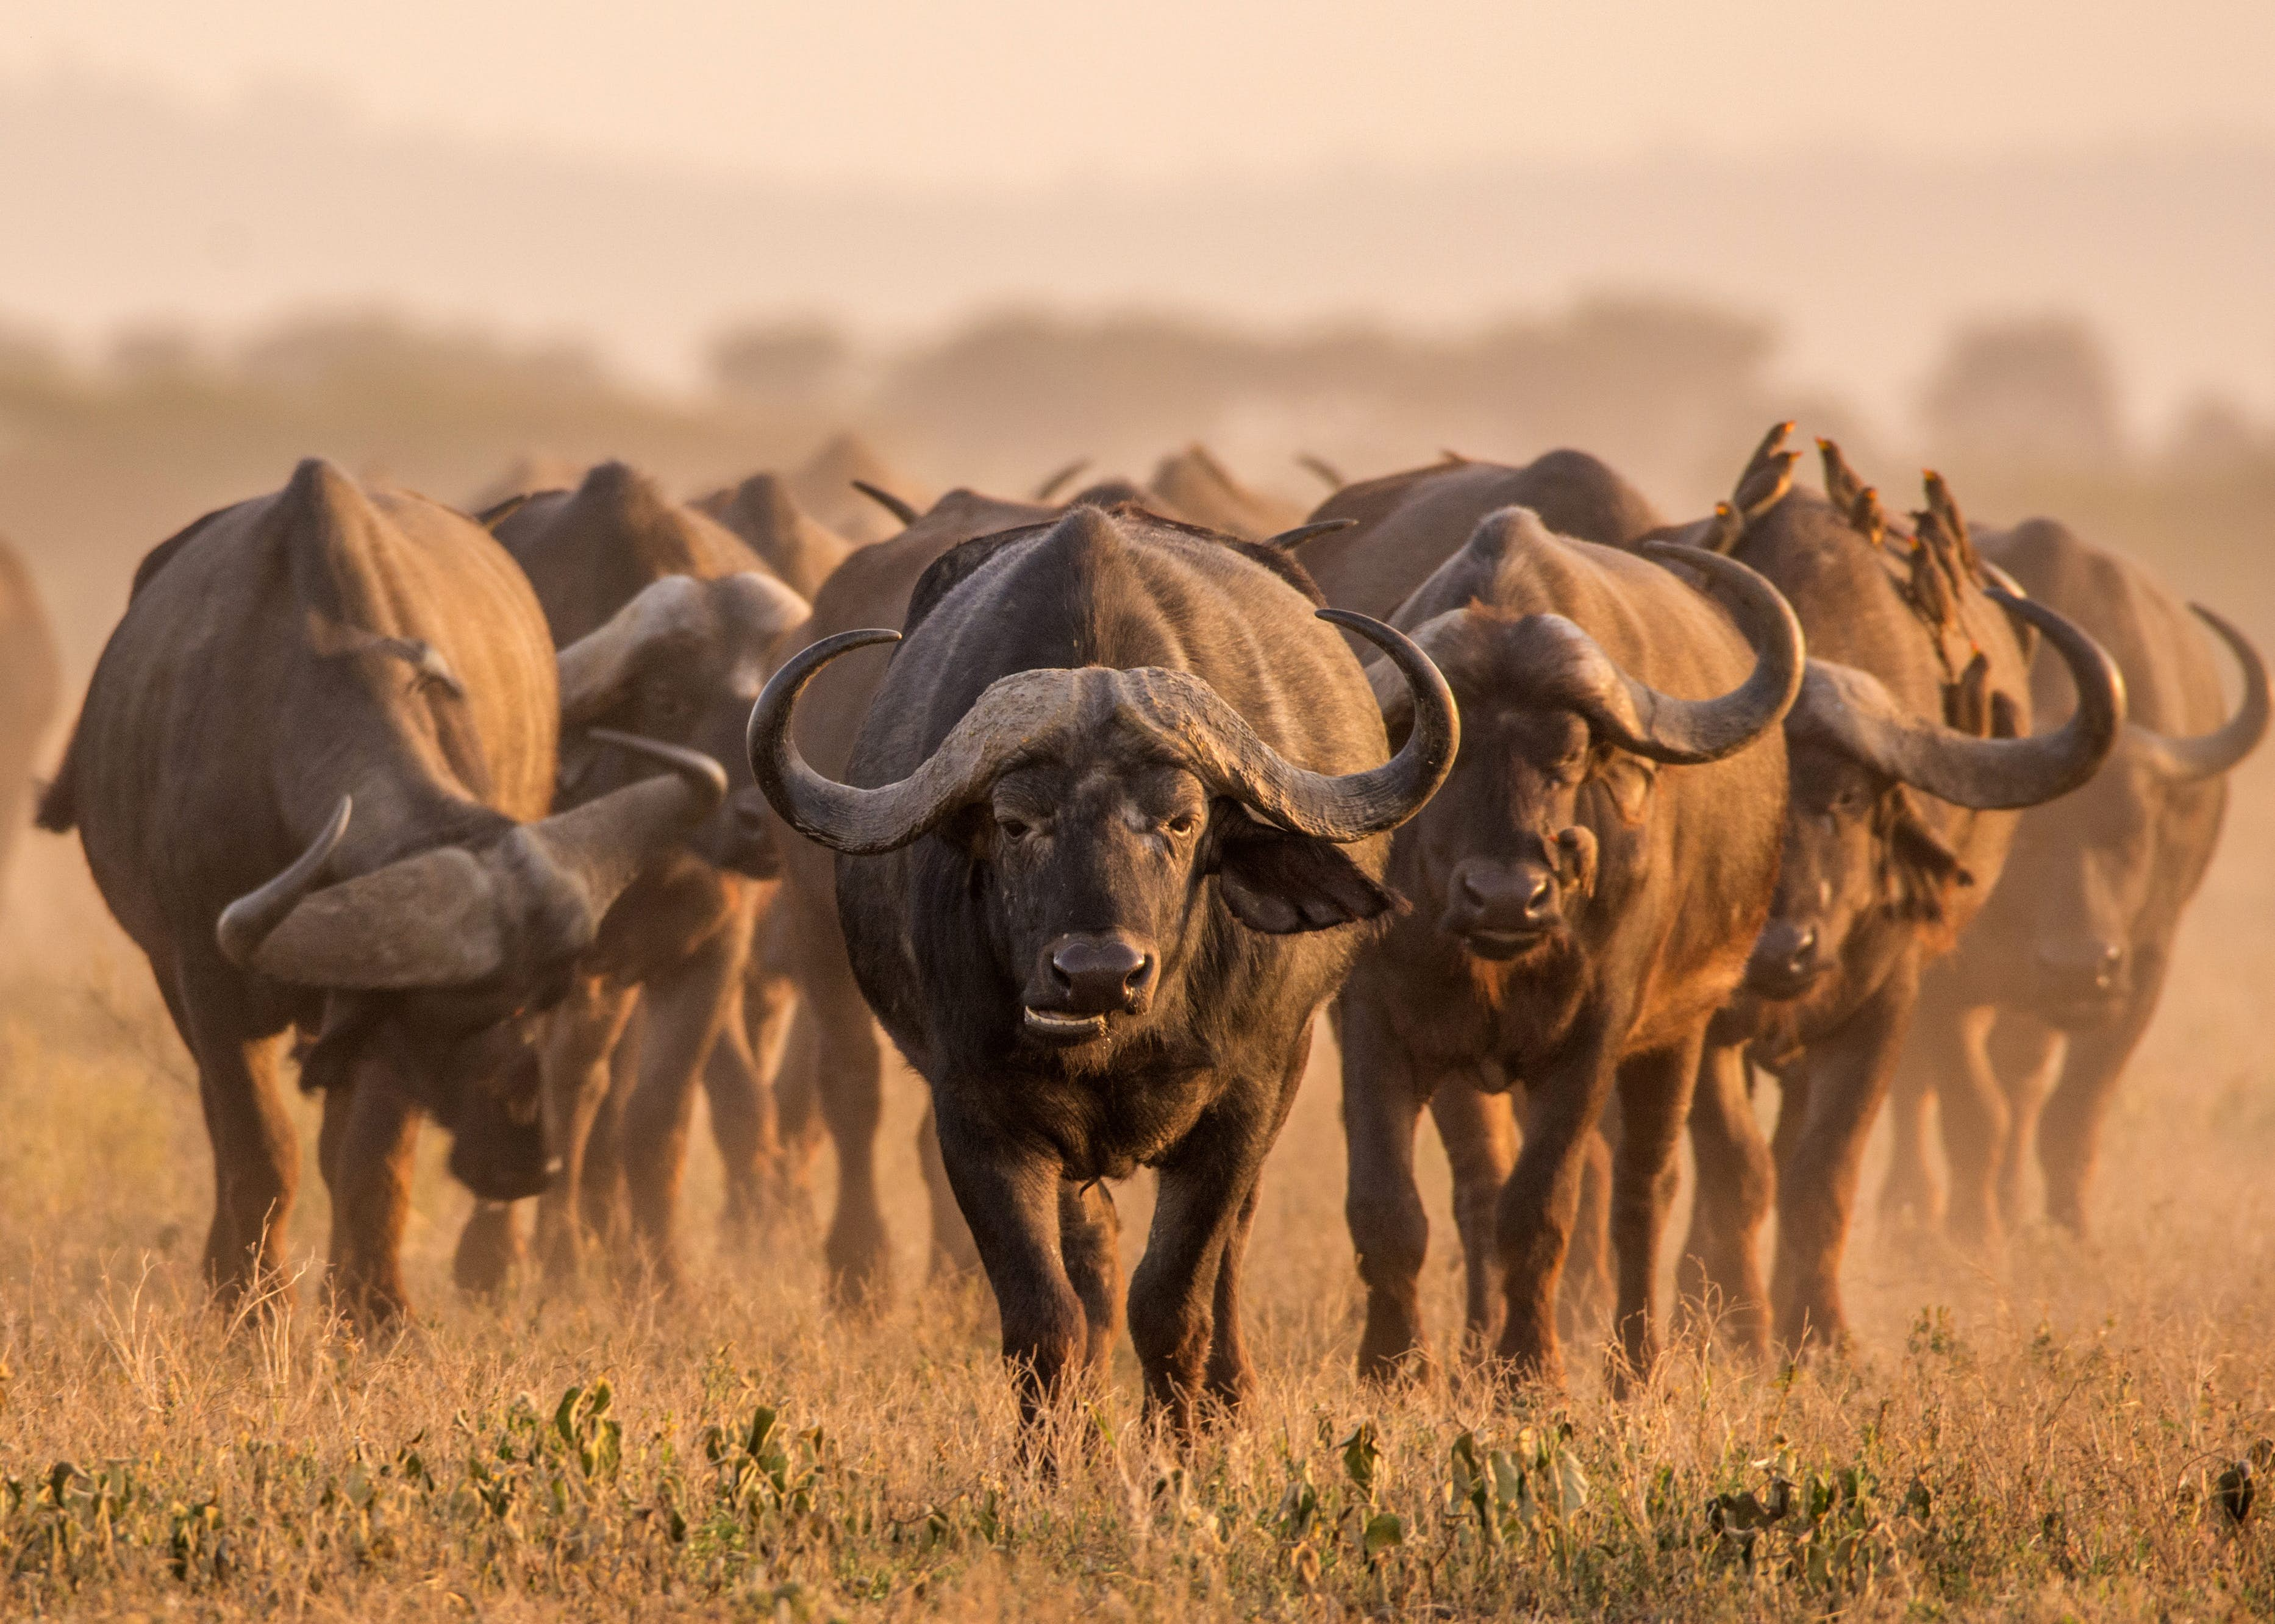 Cape buffalo are a common, if intimidating, sight in South Africa's wildlife-rich national parks © MHGALLERY / iStockphoto / Getty Images